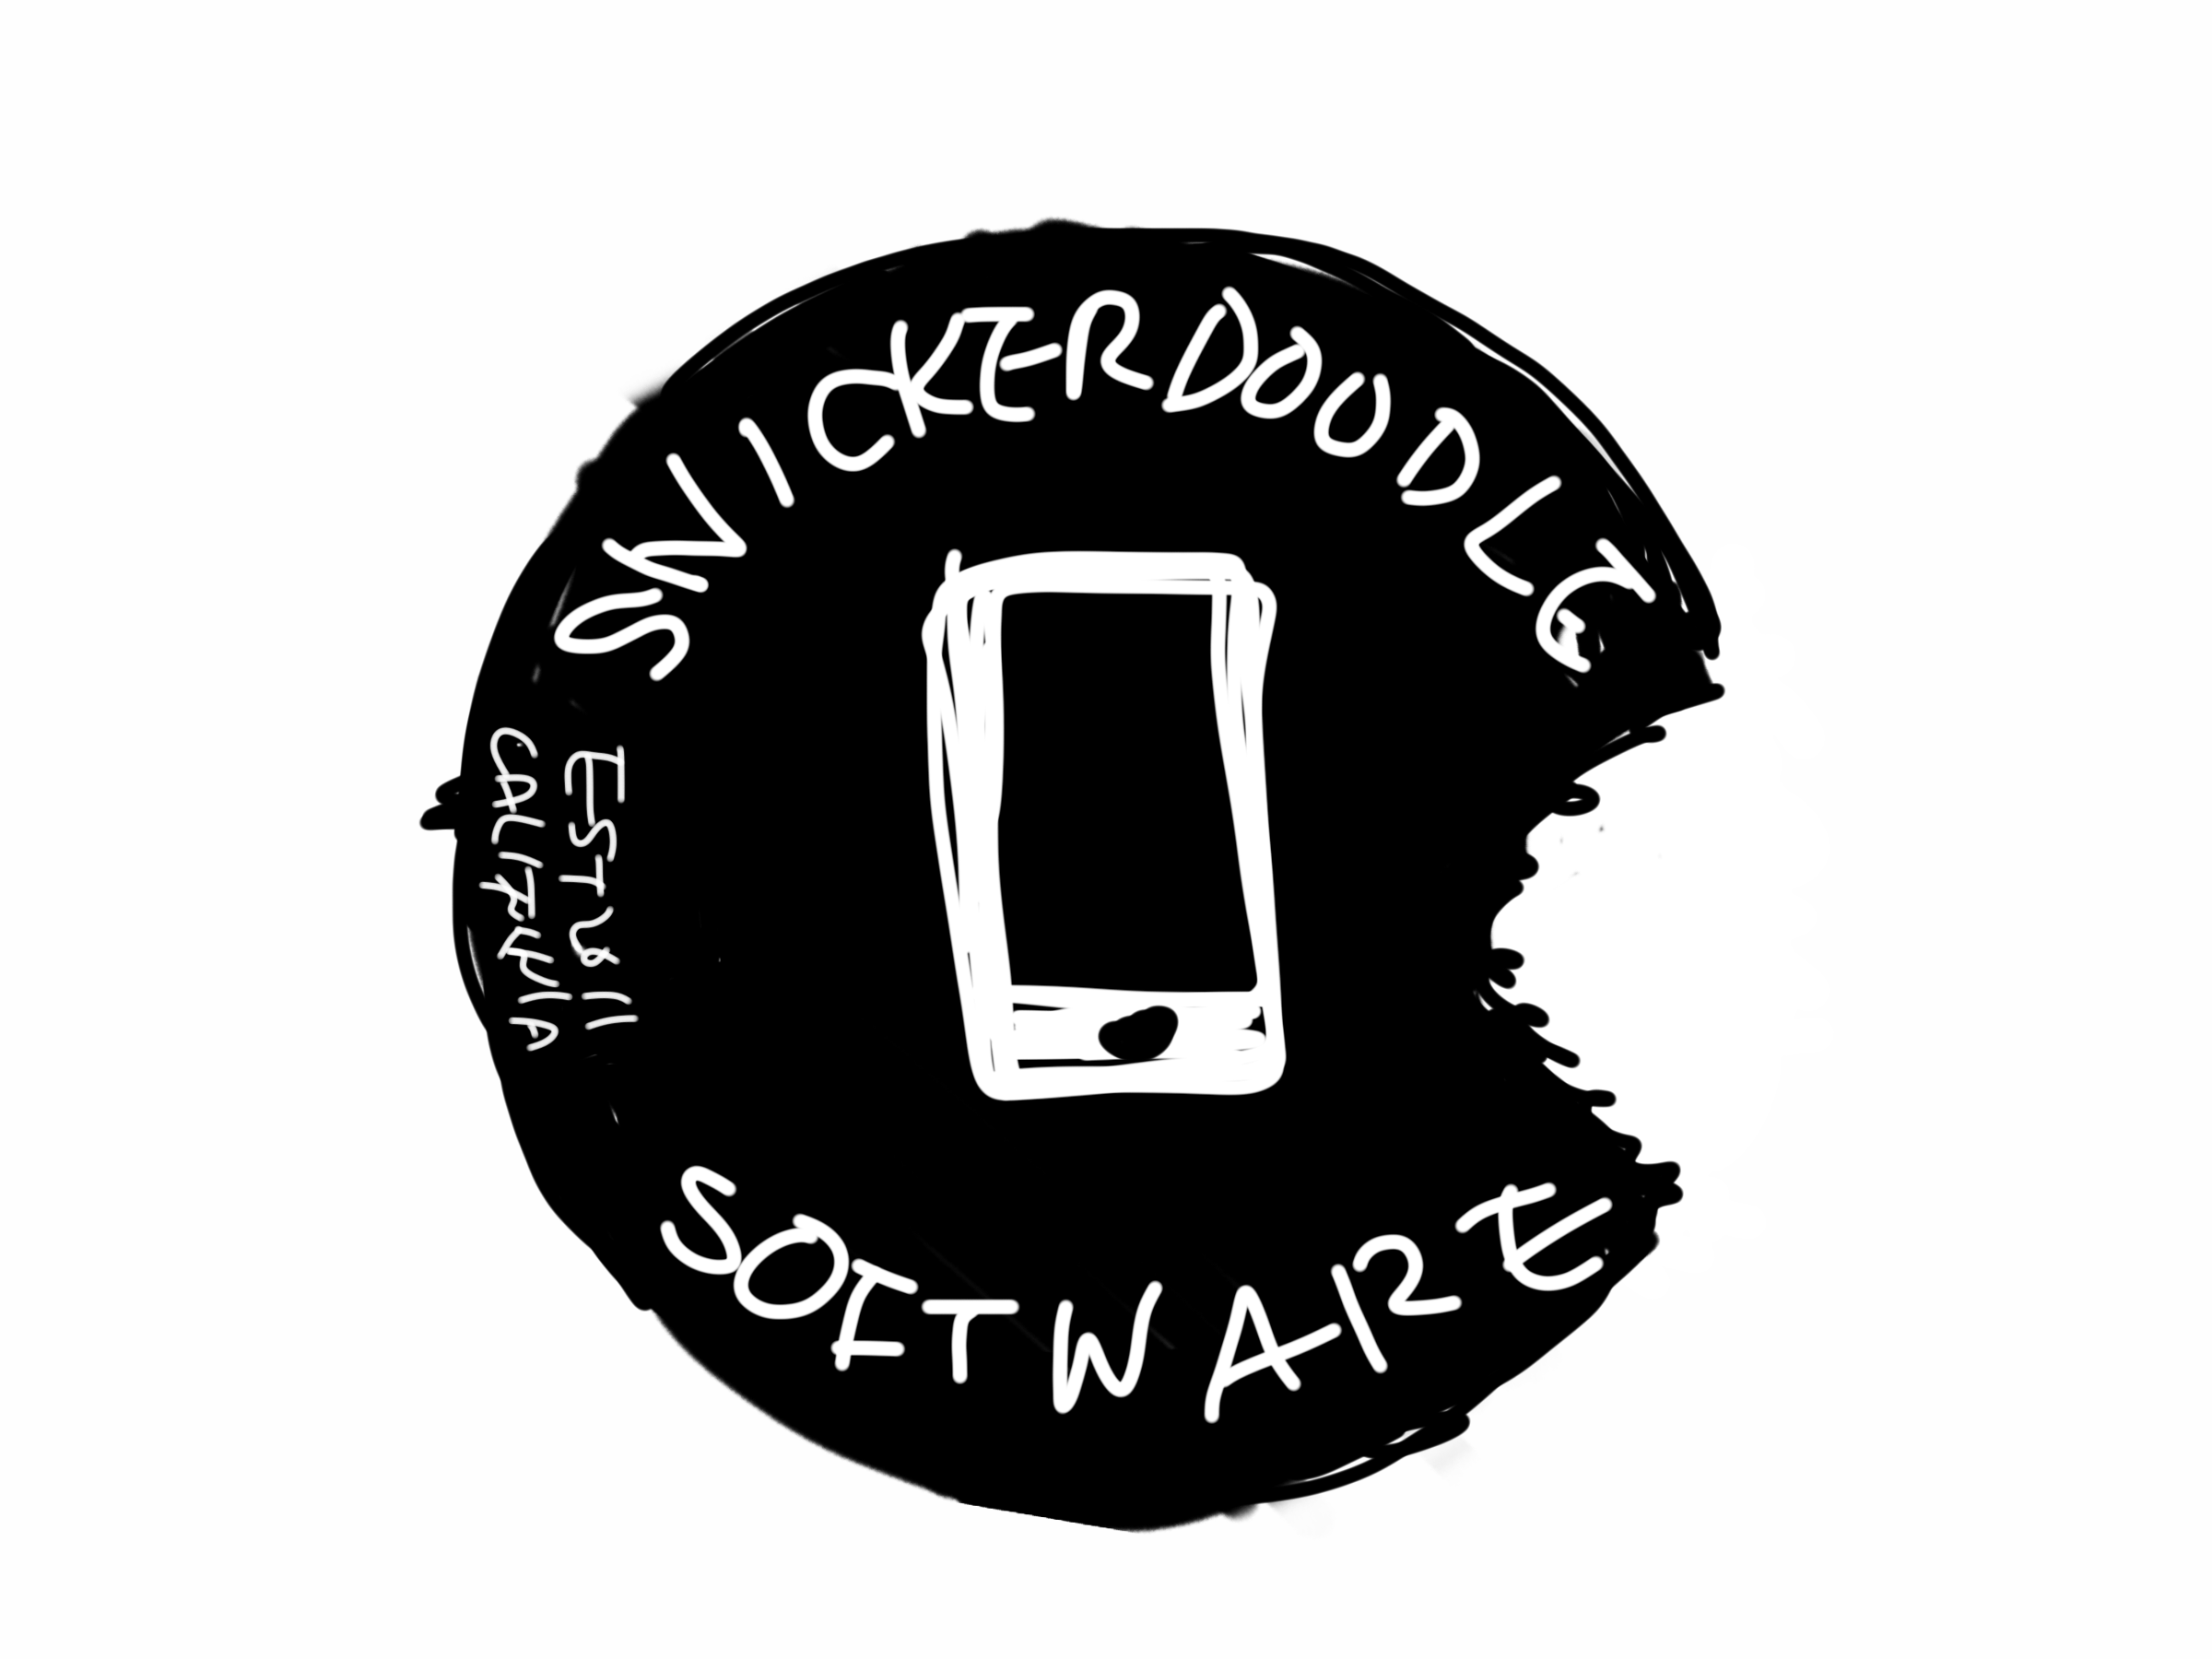 Snickerdoodle Software - image 8 - student project